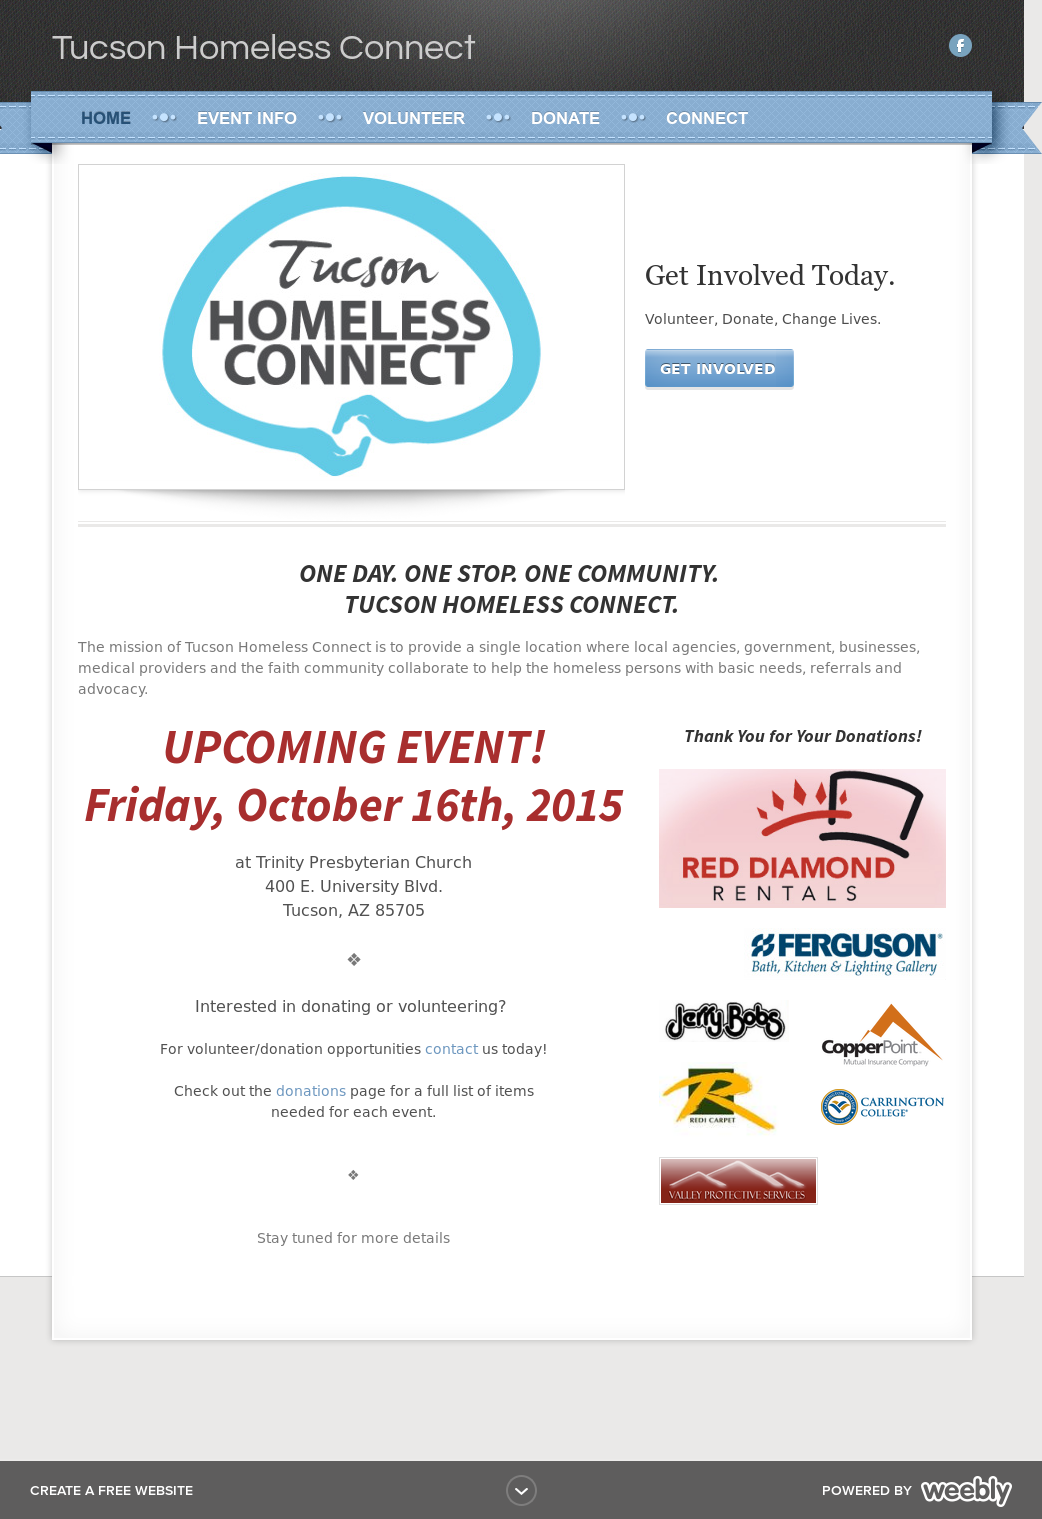 Tucson Homeless Connect Competitors, Revenue and Employees - Owler Company Profile